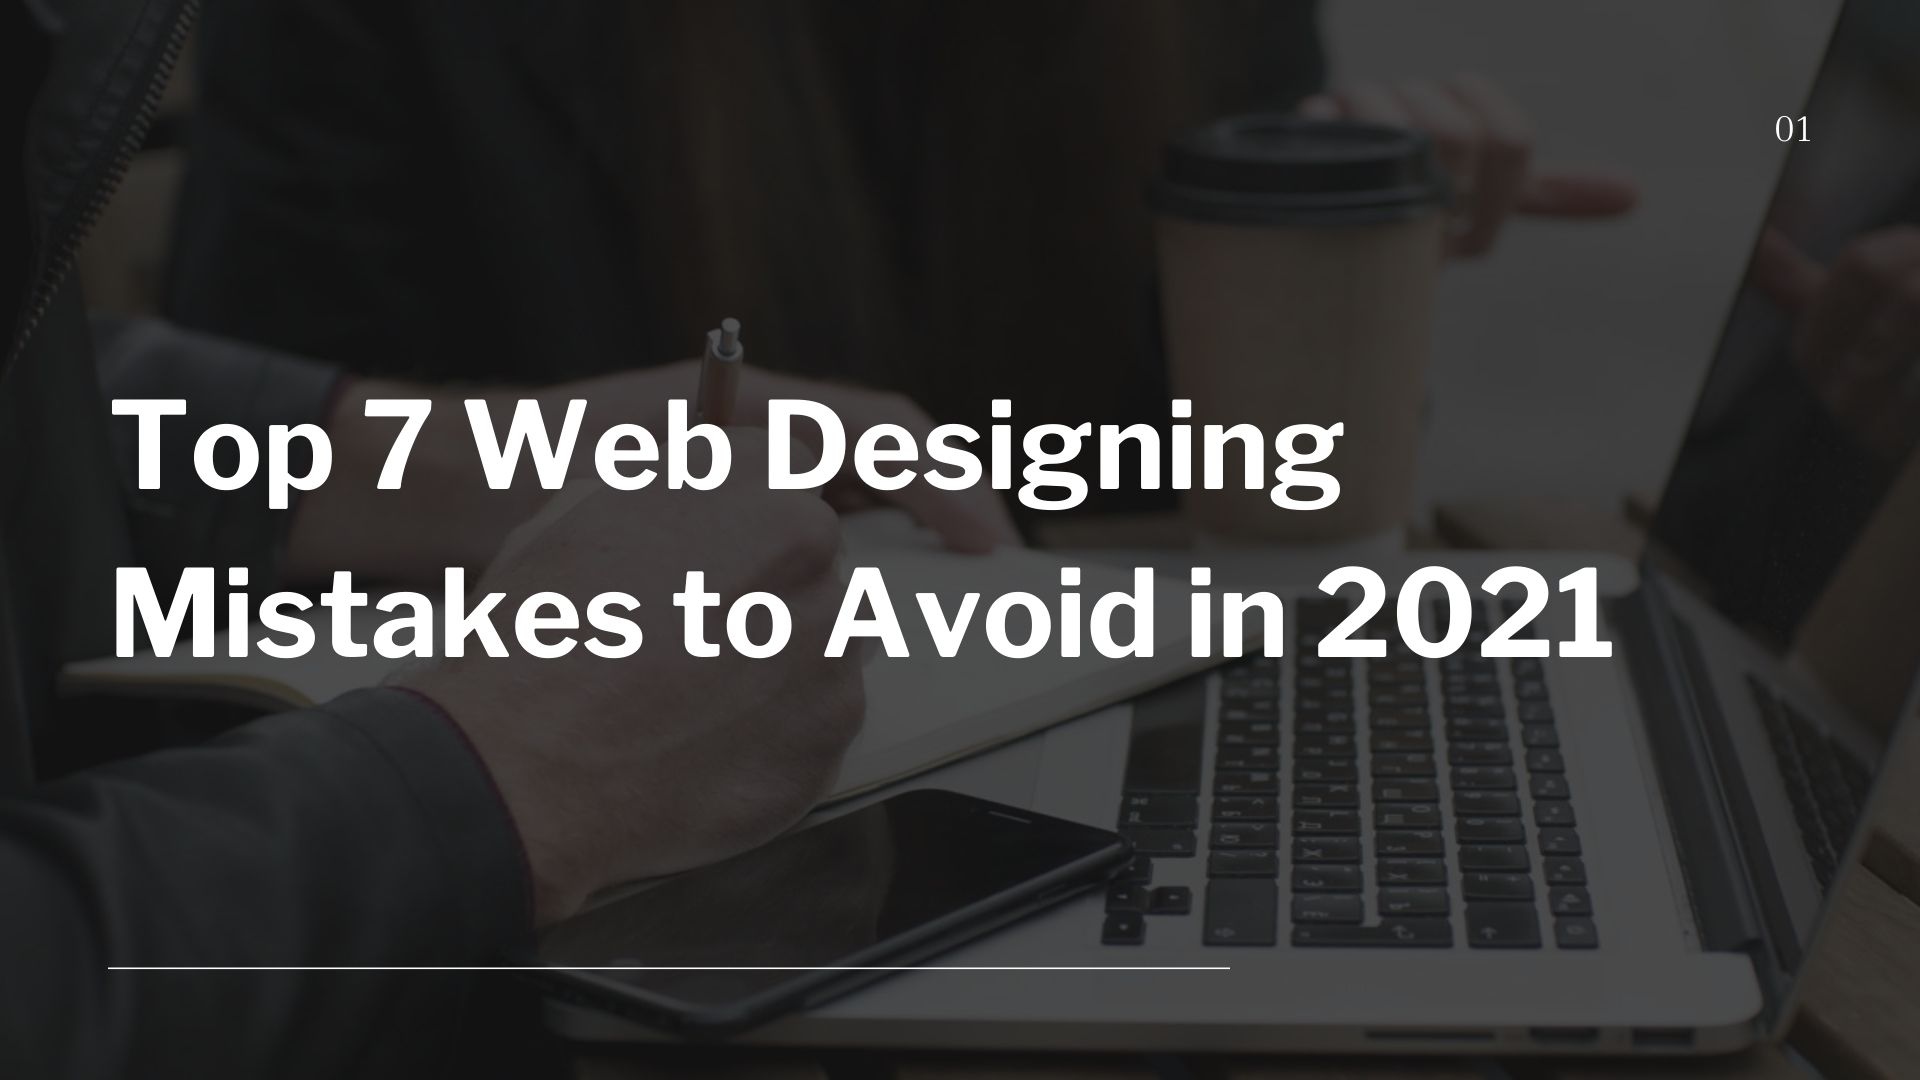 7 Web Designing Mistakes to Avoid in 2021